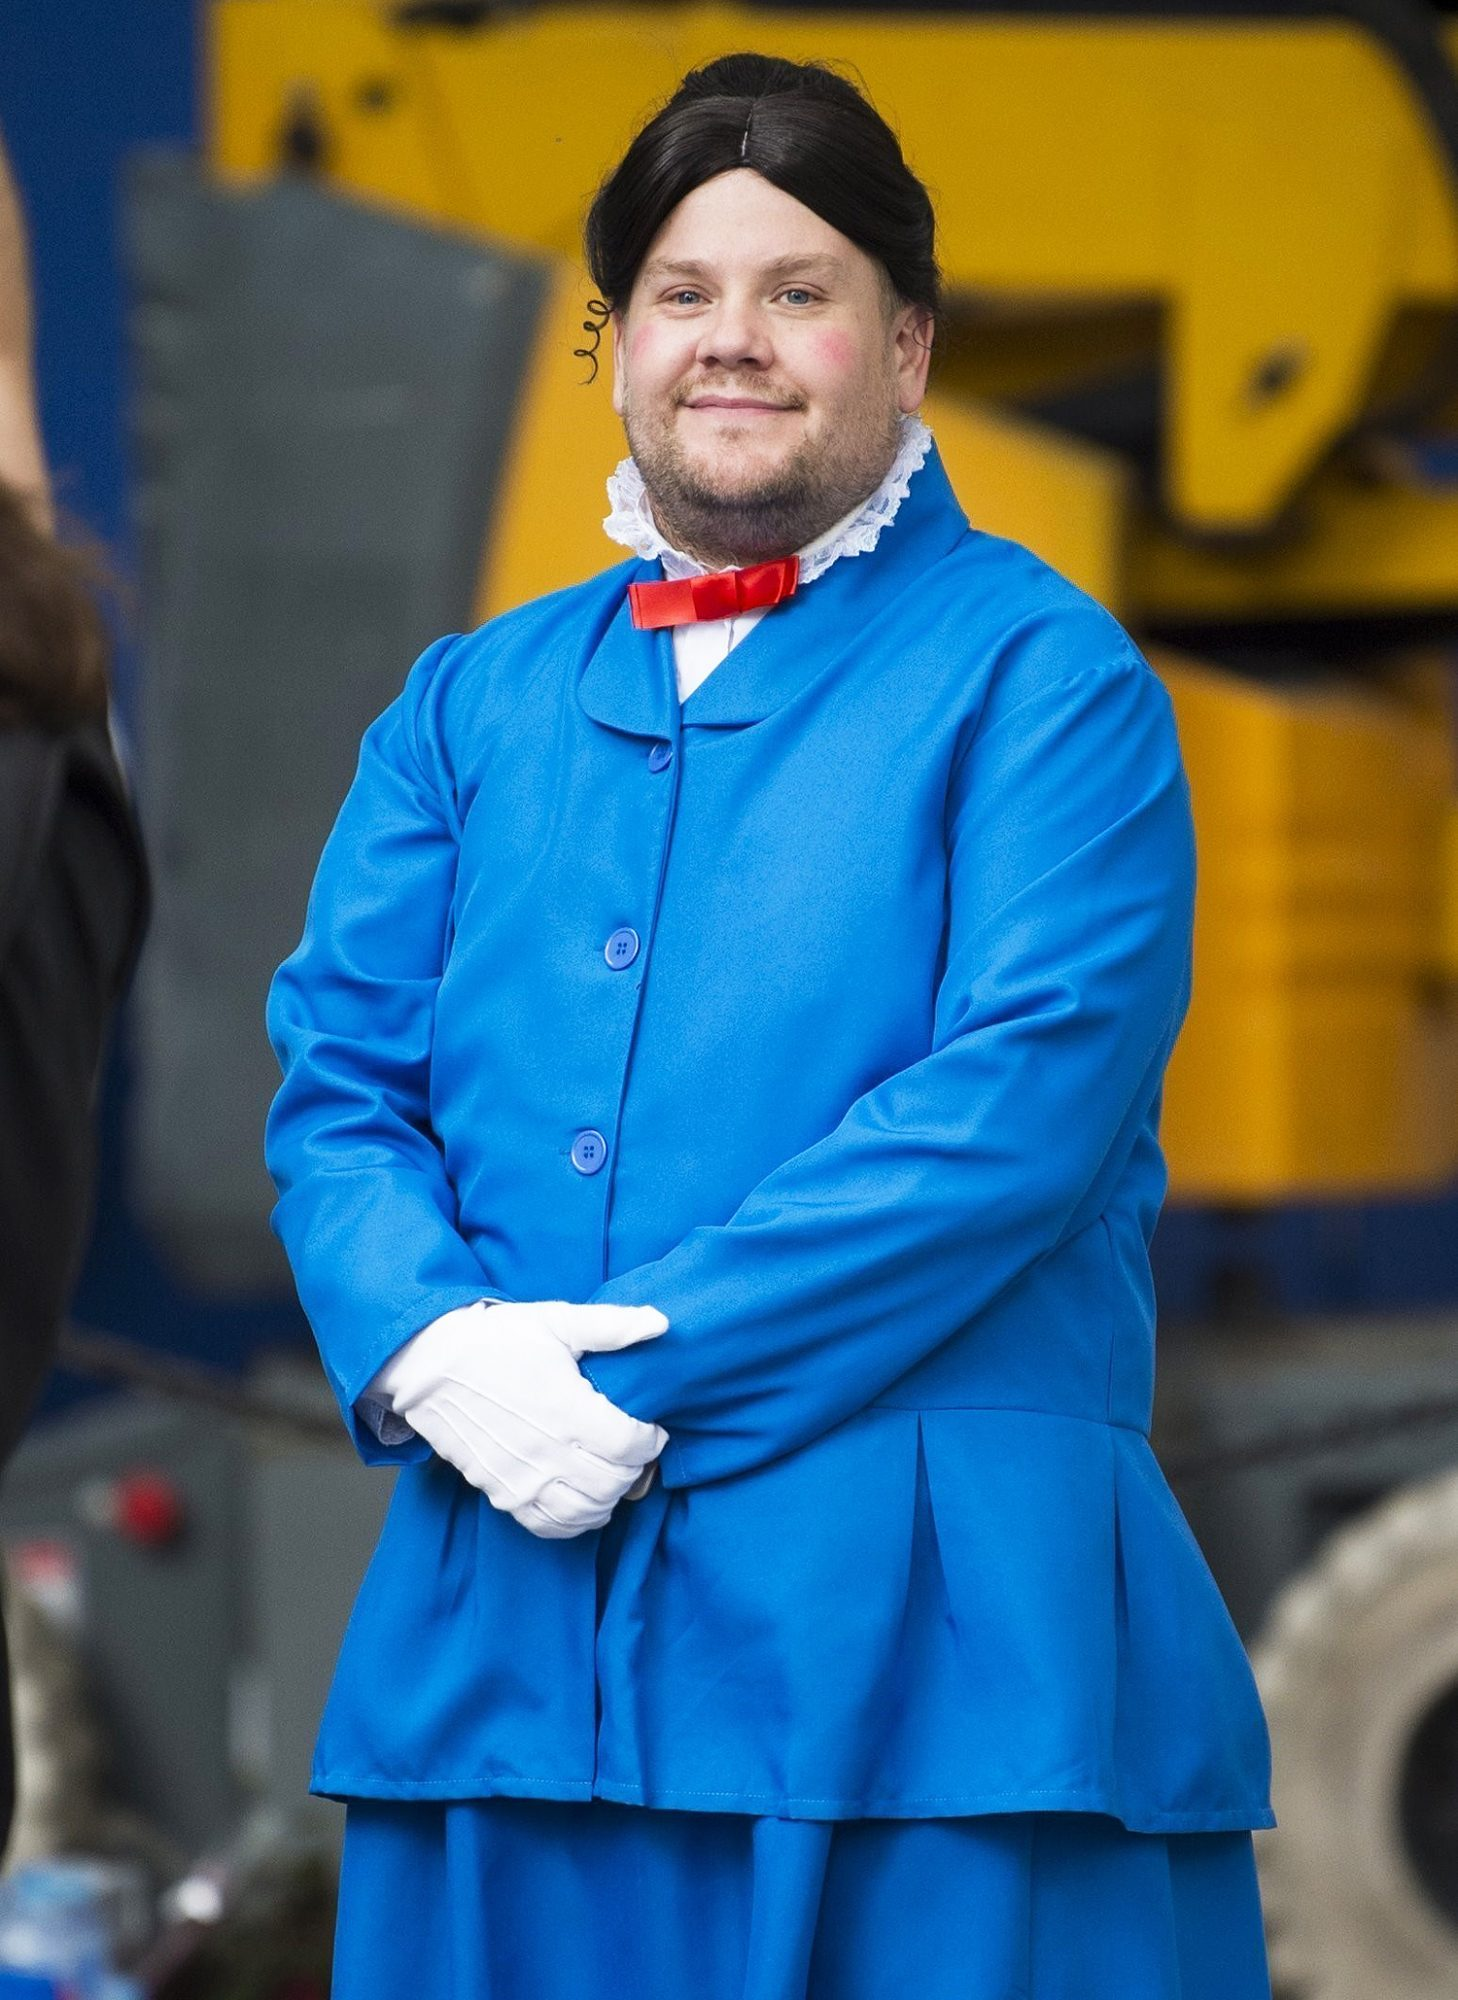 James Corden and Ben Kingsley film a 'Marry Poppins' sketch in London